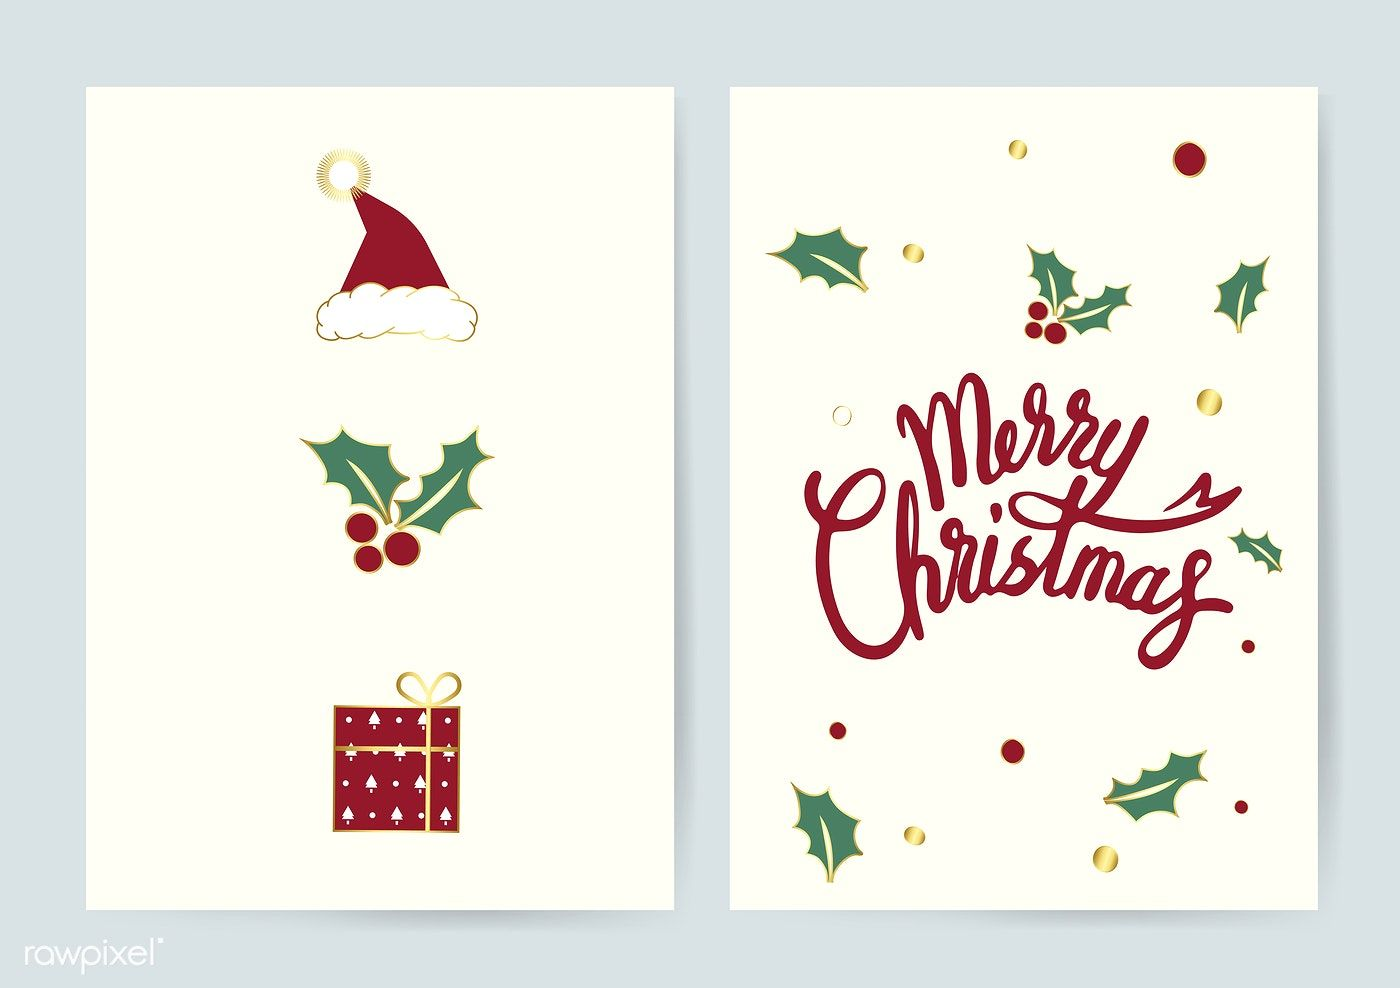 Merry Christmas Typography Card Vector Free Image By Rawpixel